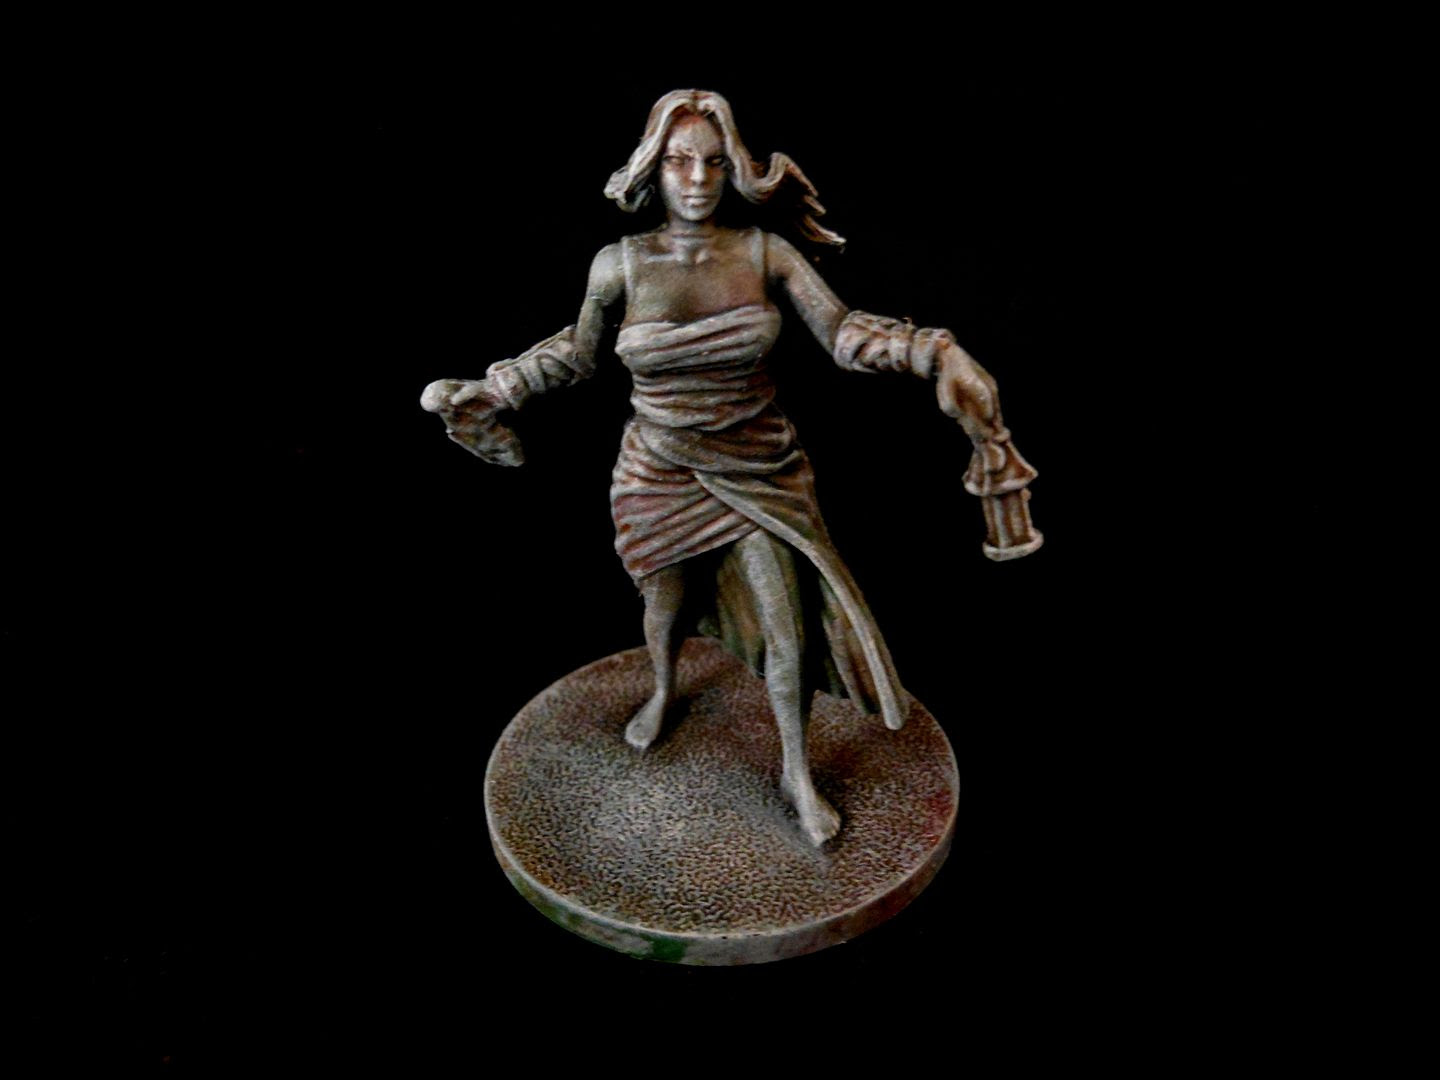 A female survivor from Kingdom Death: Monster, painted to look like stone.